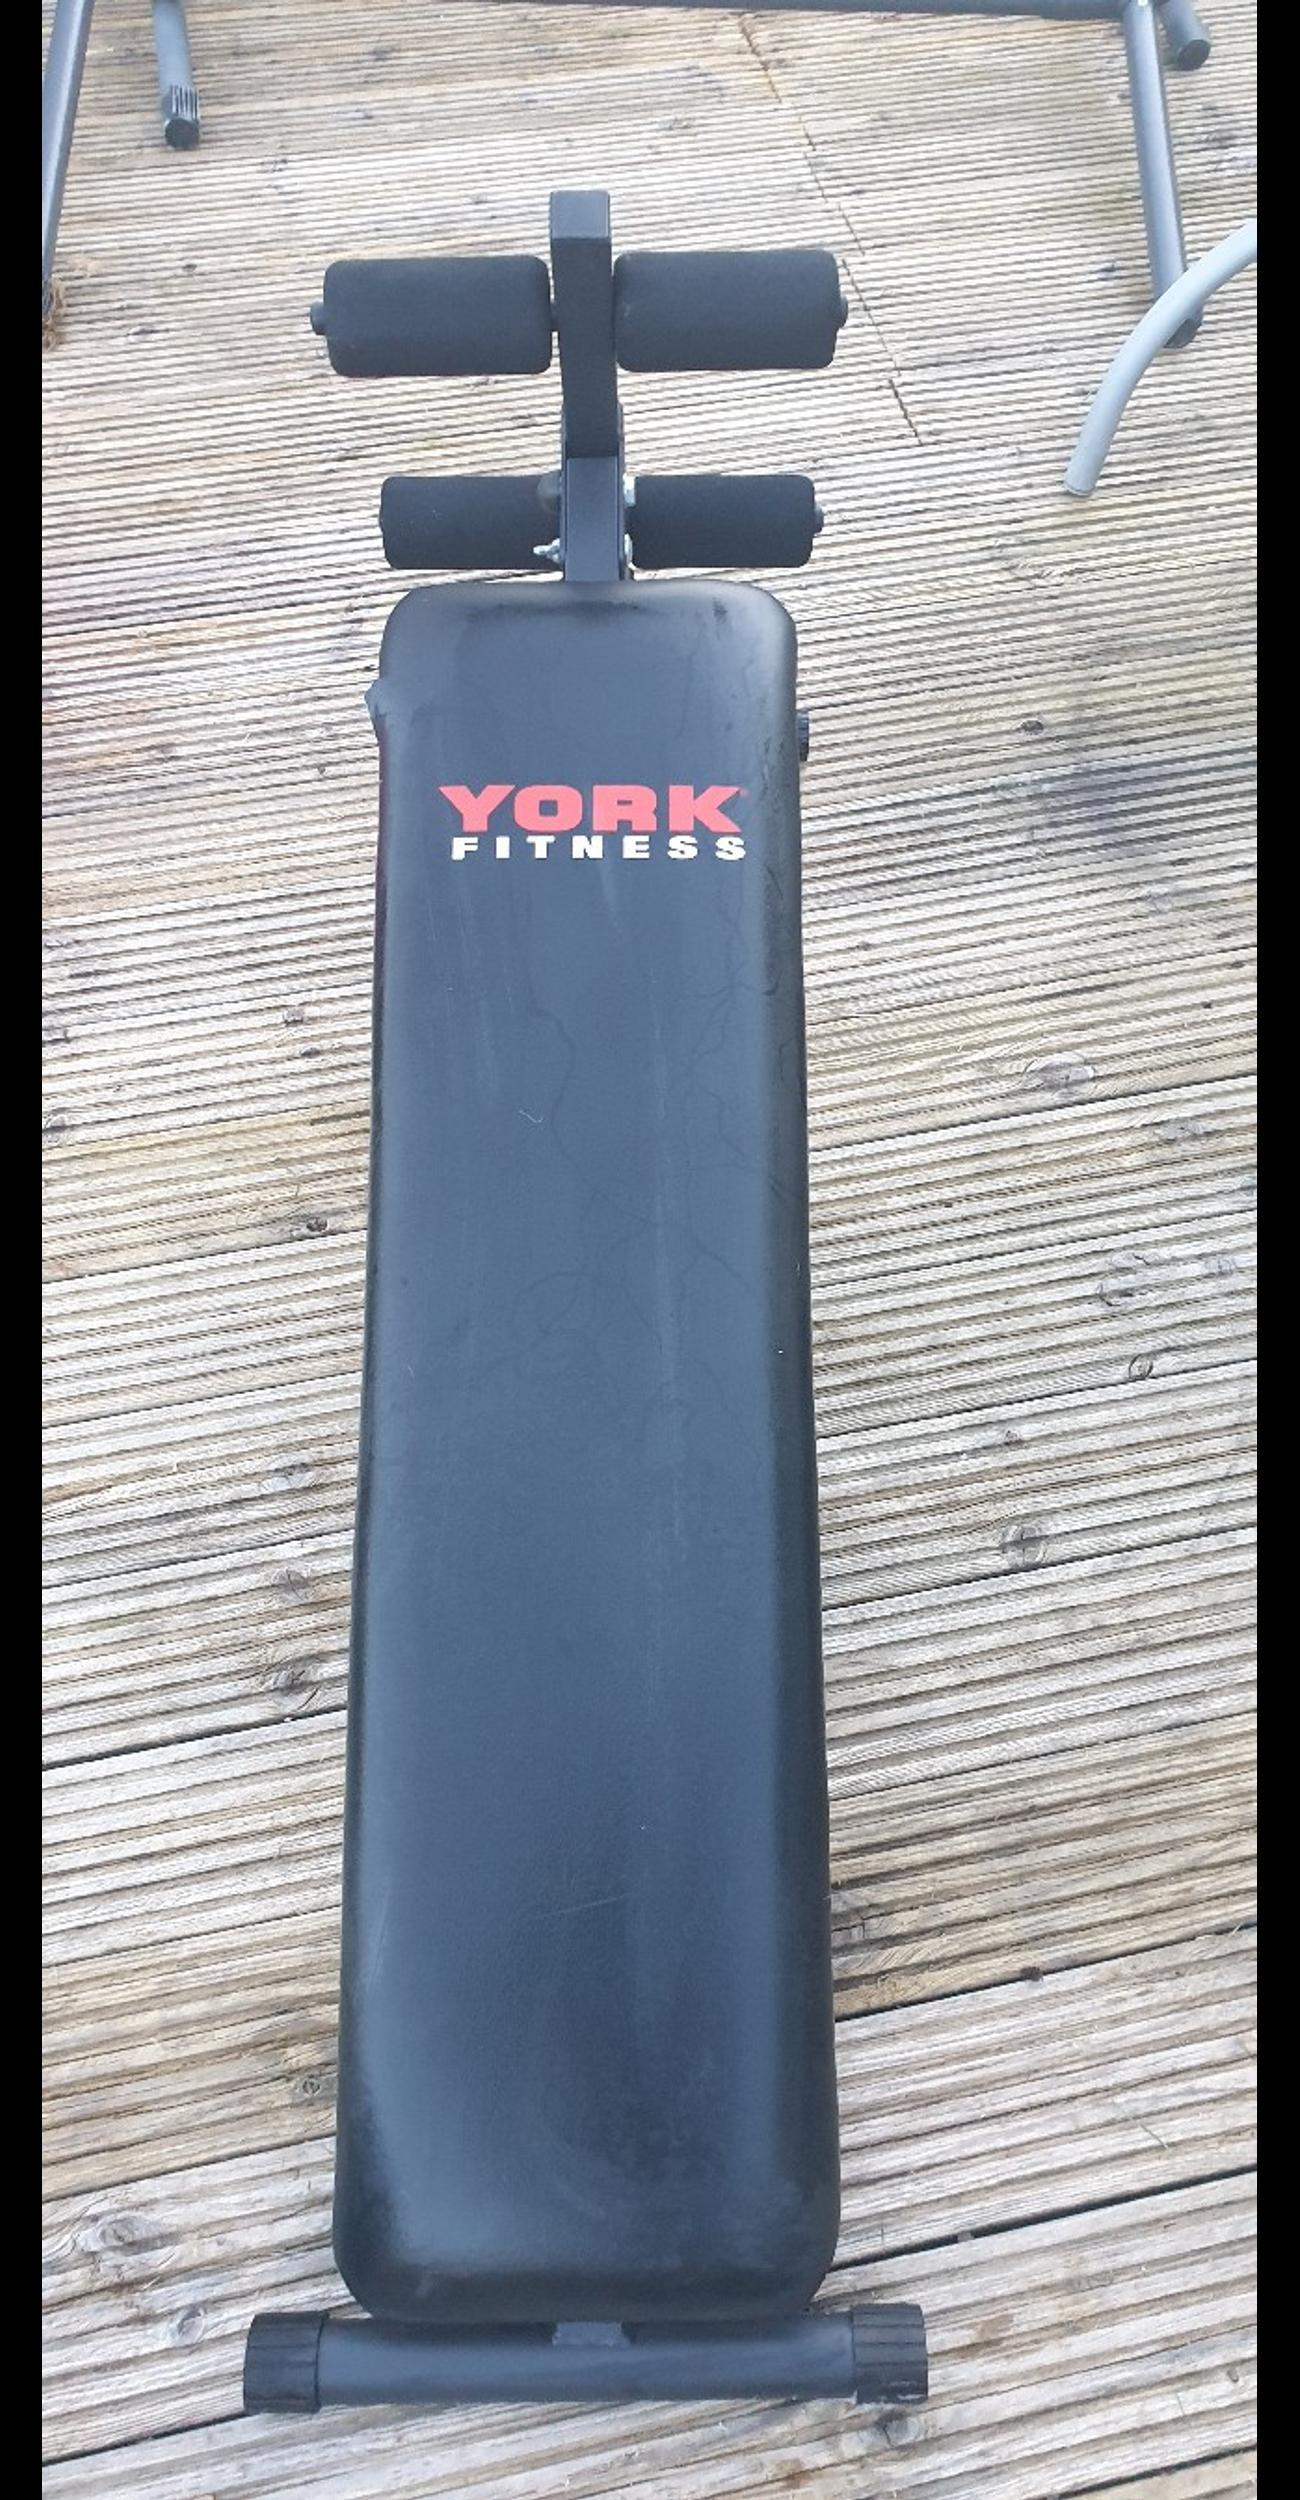 York Fitness Barbell Abdo Board. Adjustable Incline and Leg pads. Has a slight tear on the side but doesn't affect it in anyway. Been sat in shed for a while so could do with a clean. I have given it a quick wipe down.  Collection only